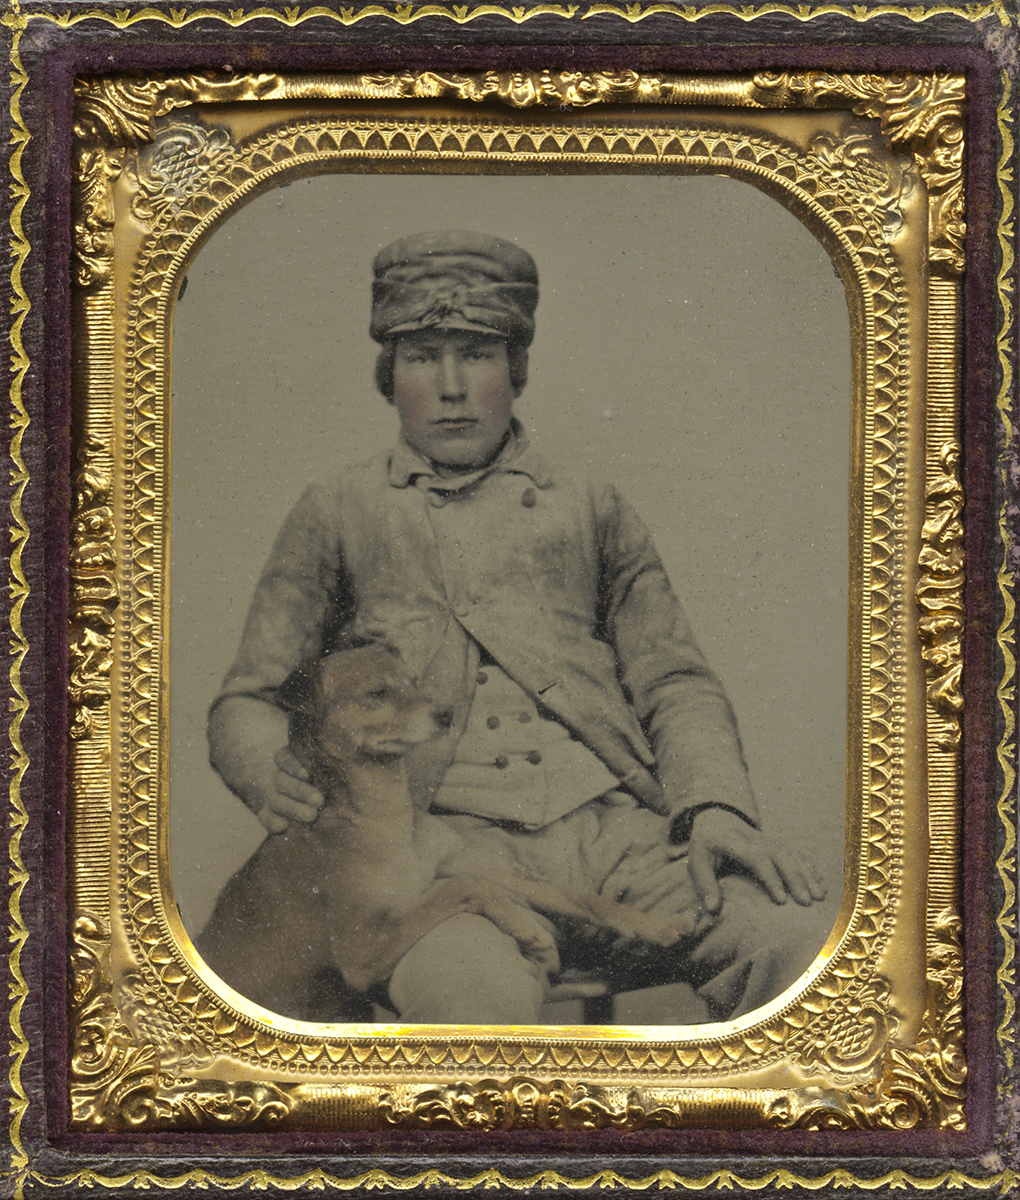 Portrait of Young Cadet with Dog